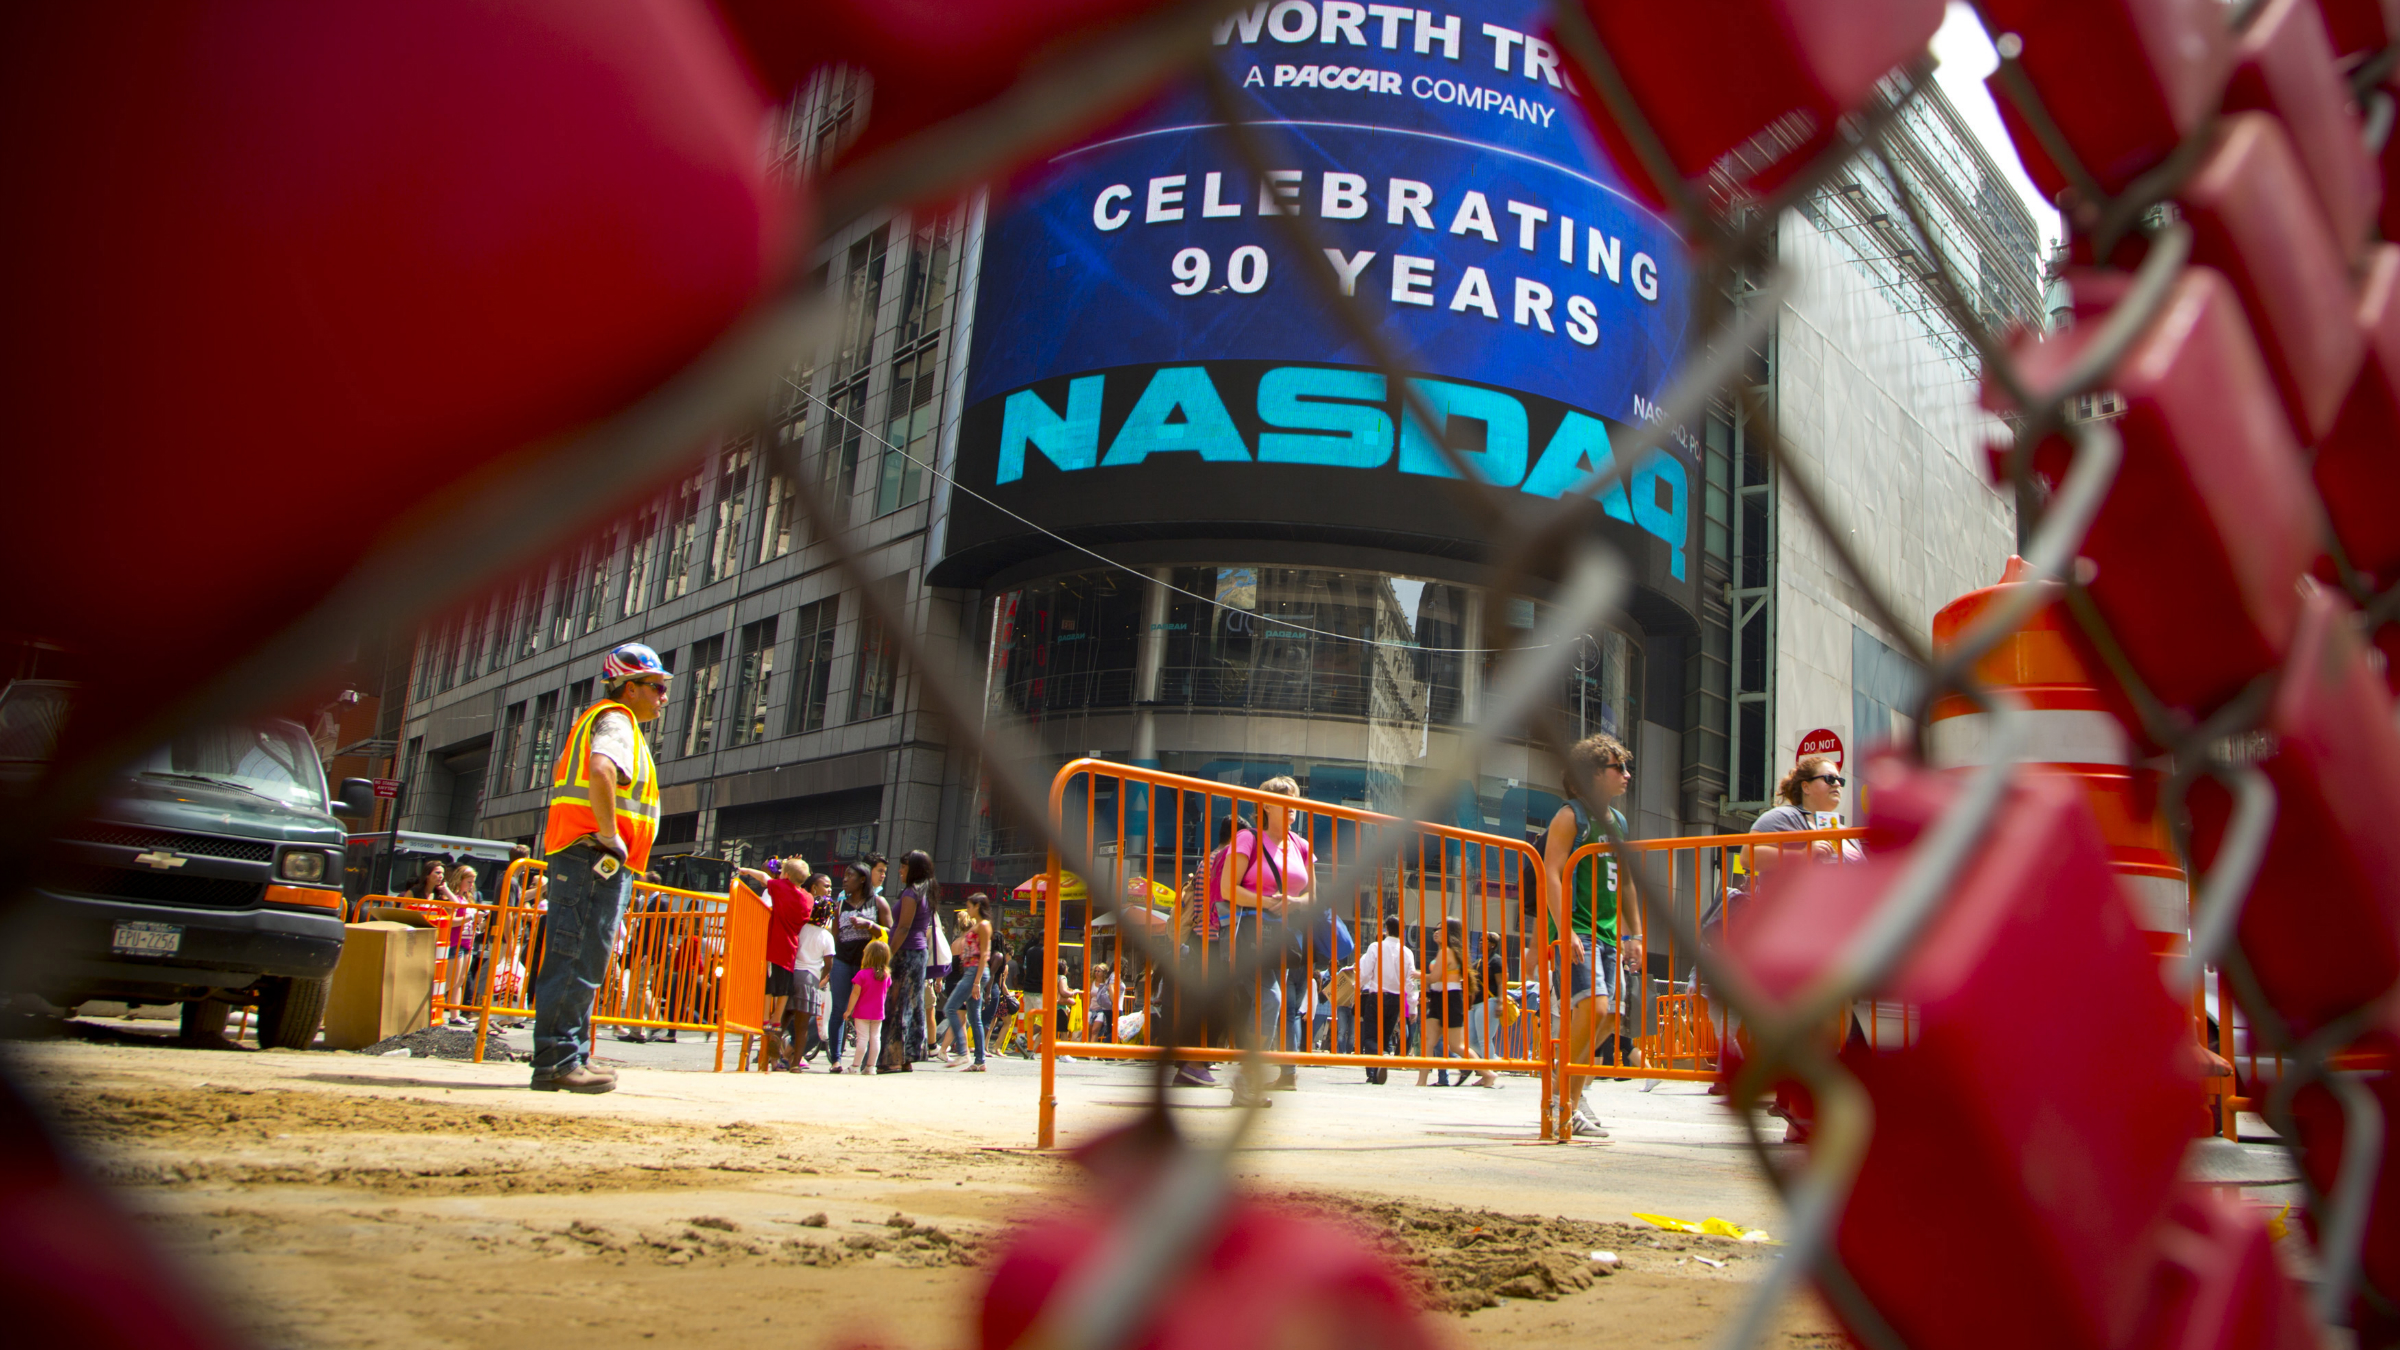 Construction crew work outside the Nasdaq MarketSite in New York's Times Square, August 23, 2013. Stocks inched higher on Friday as trading resumed without interruption a day after the Nasdaq stock exchange suffered an unprecedented, three-hour trading halt. REUTERS/Andrew Kelly